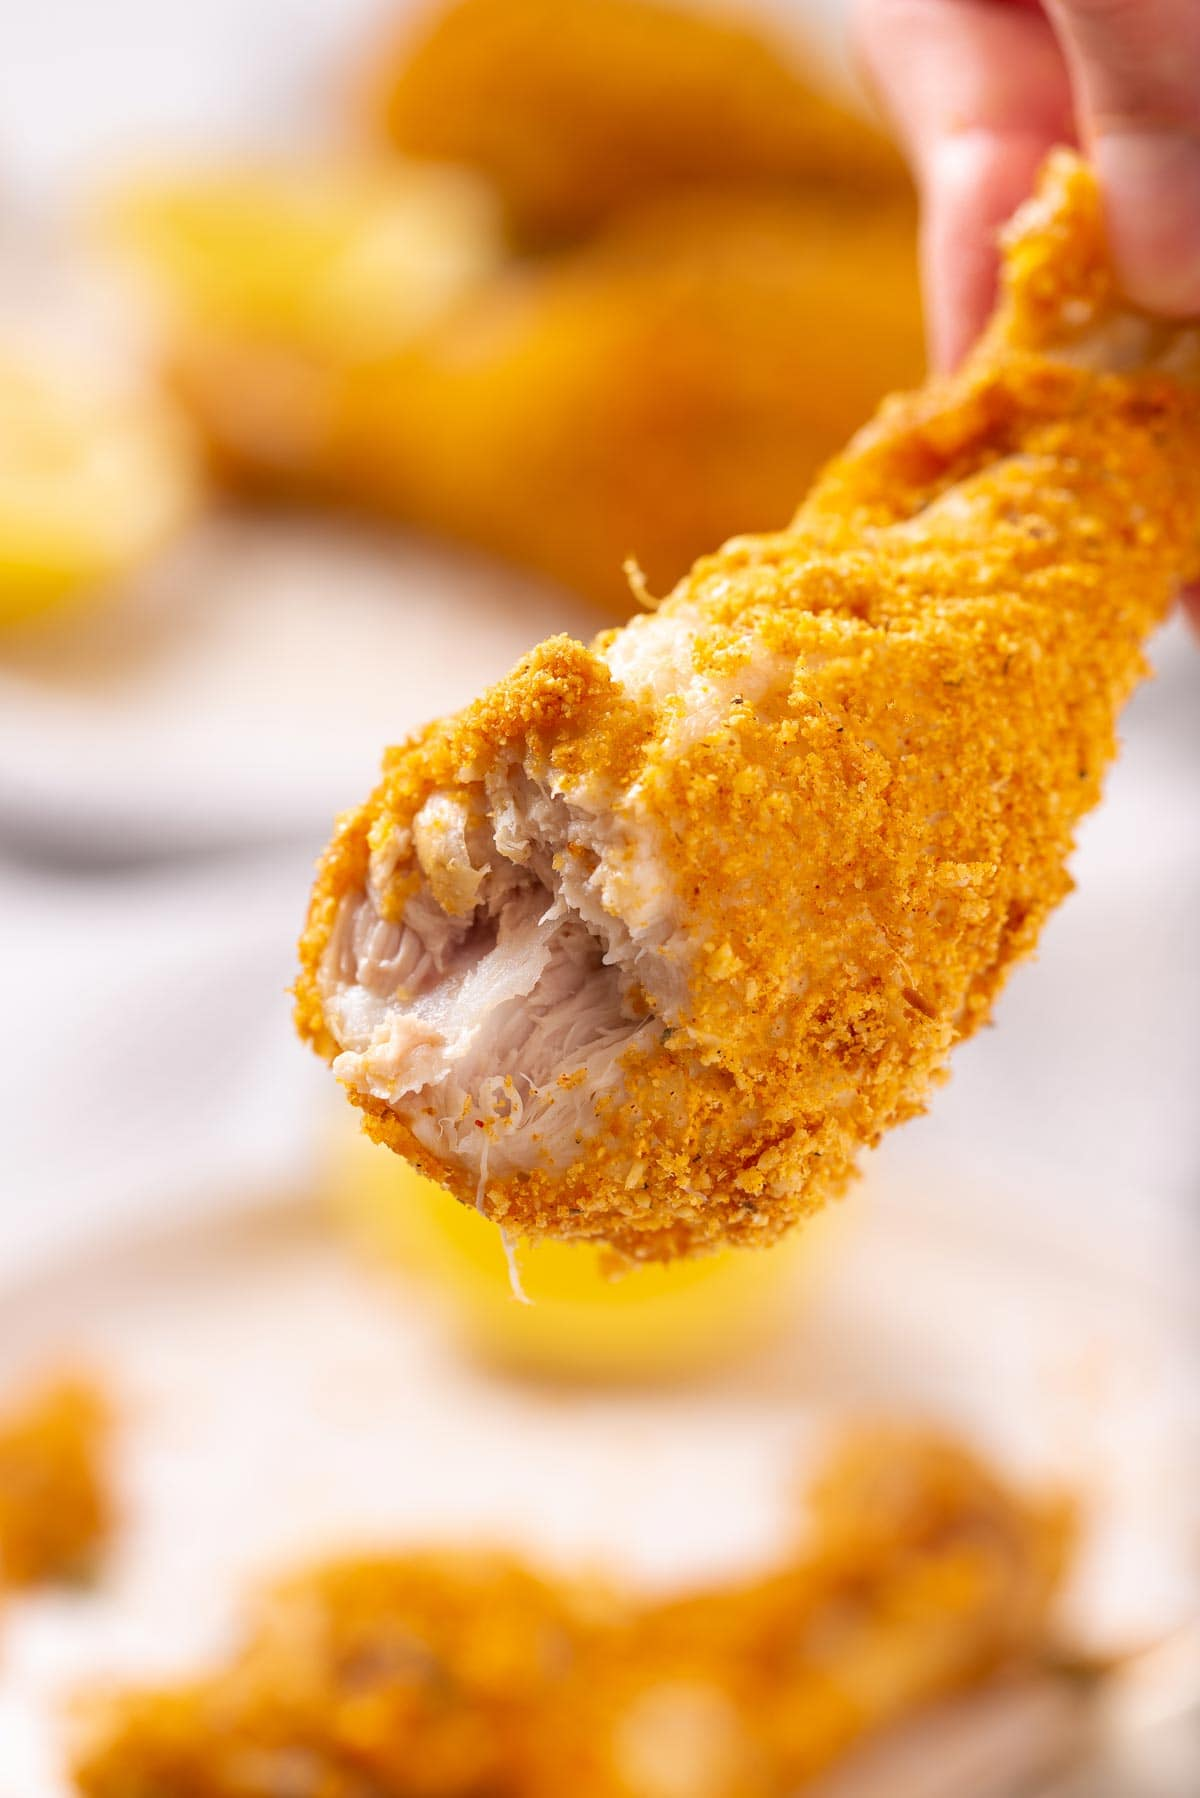 A chicken drumstick with a bite in it.